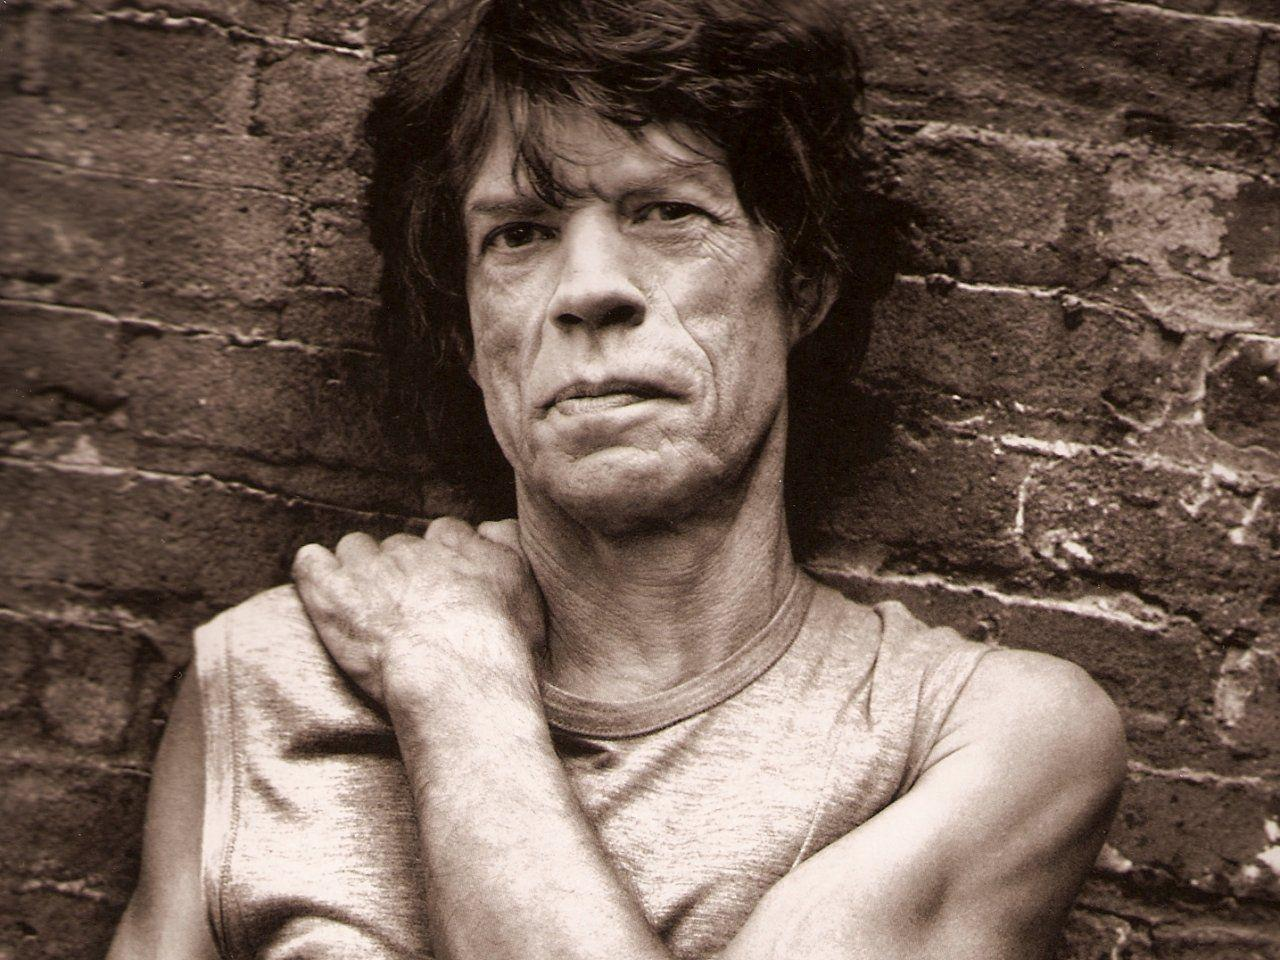 Rolling Stones Mick Jagger Wallpaper | Music Wallpapers Gallery ...